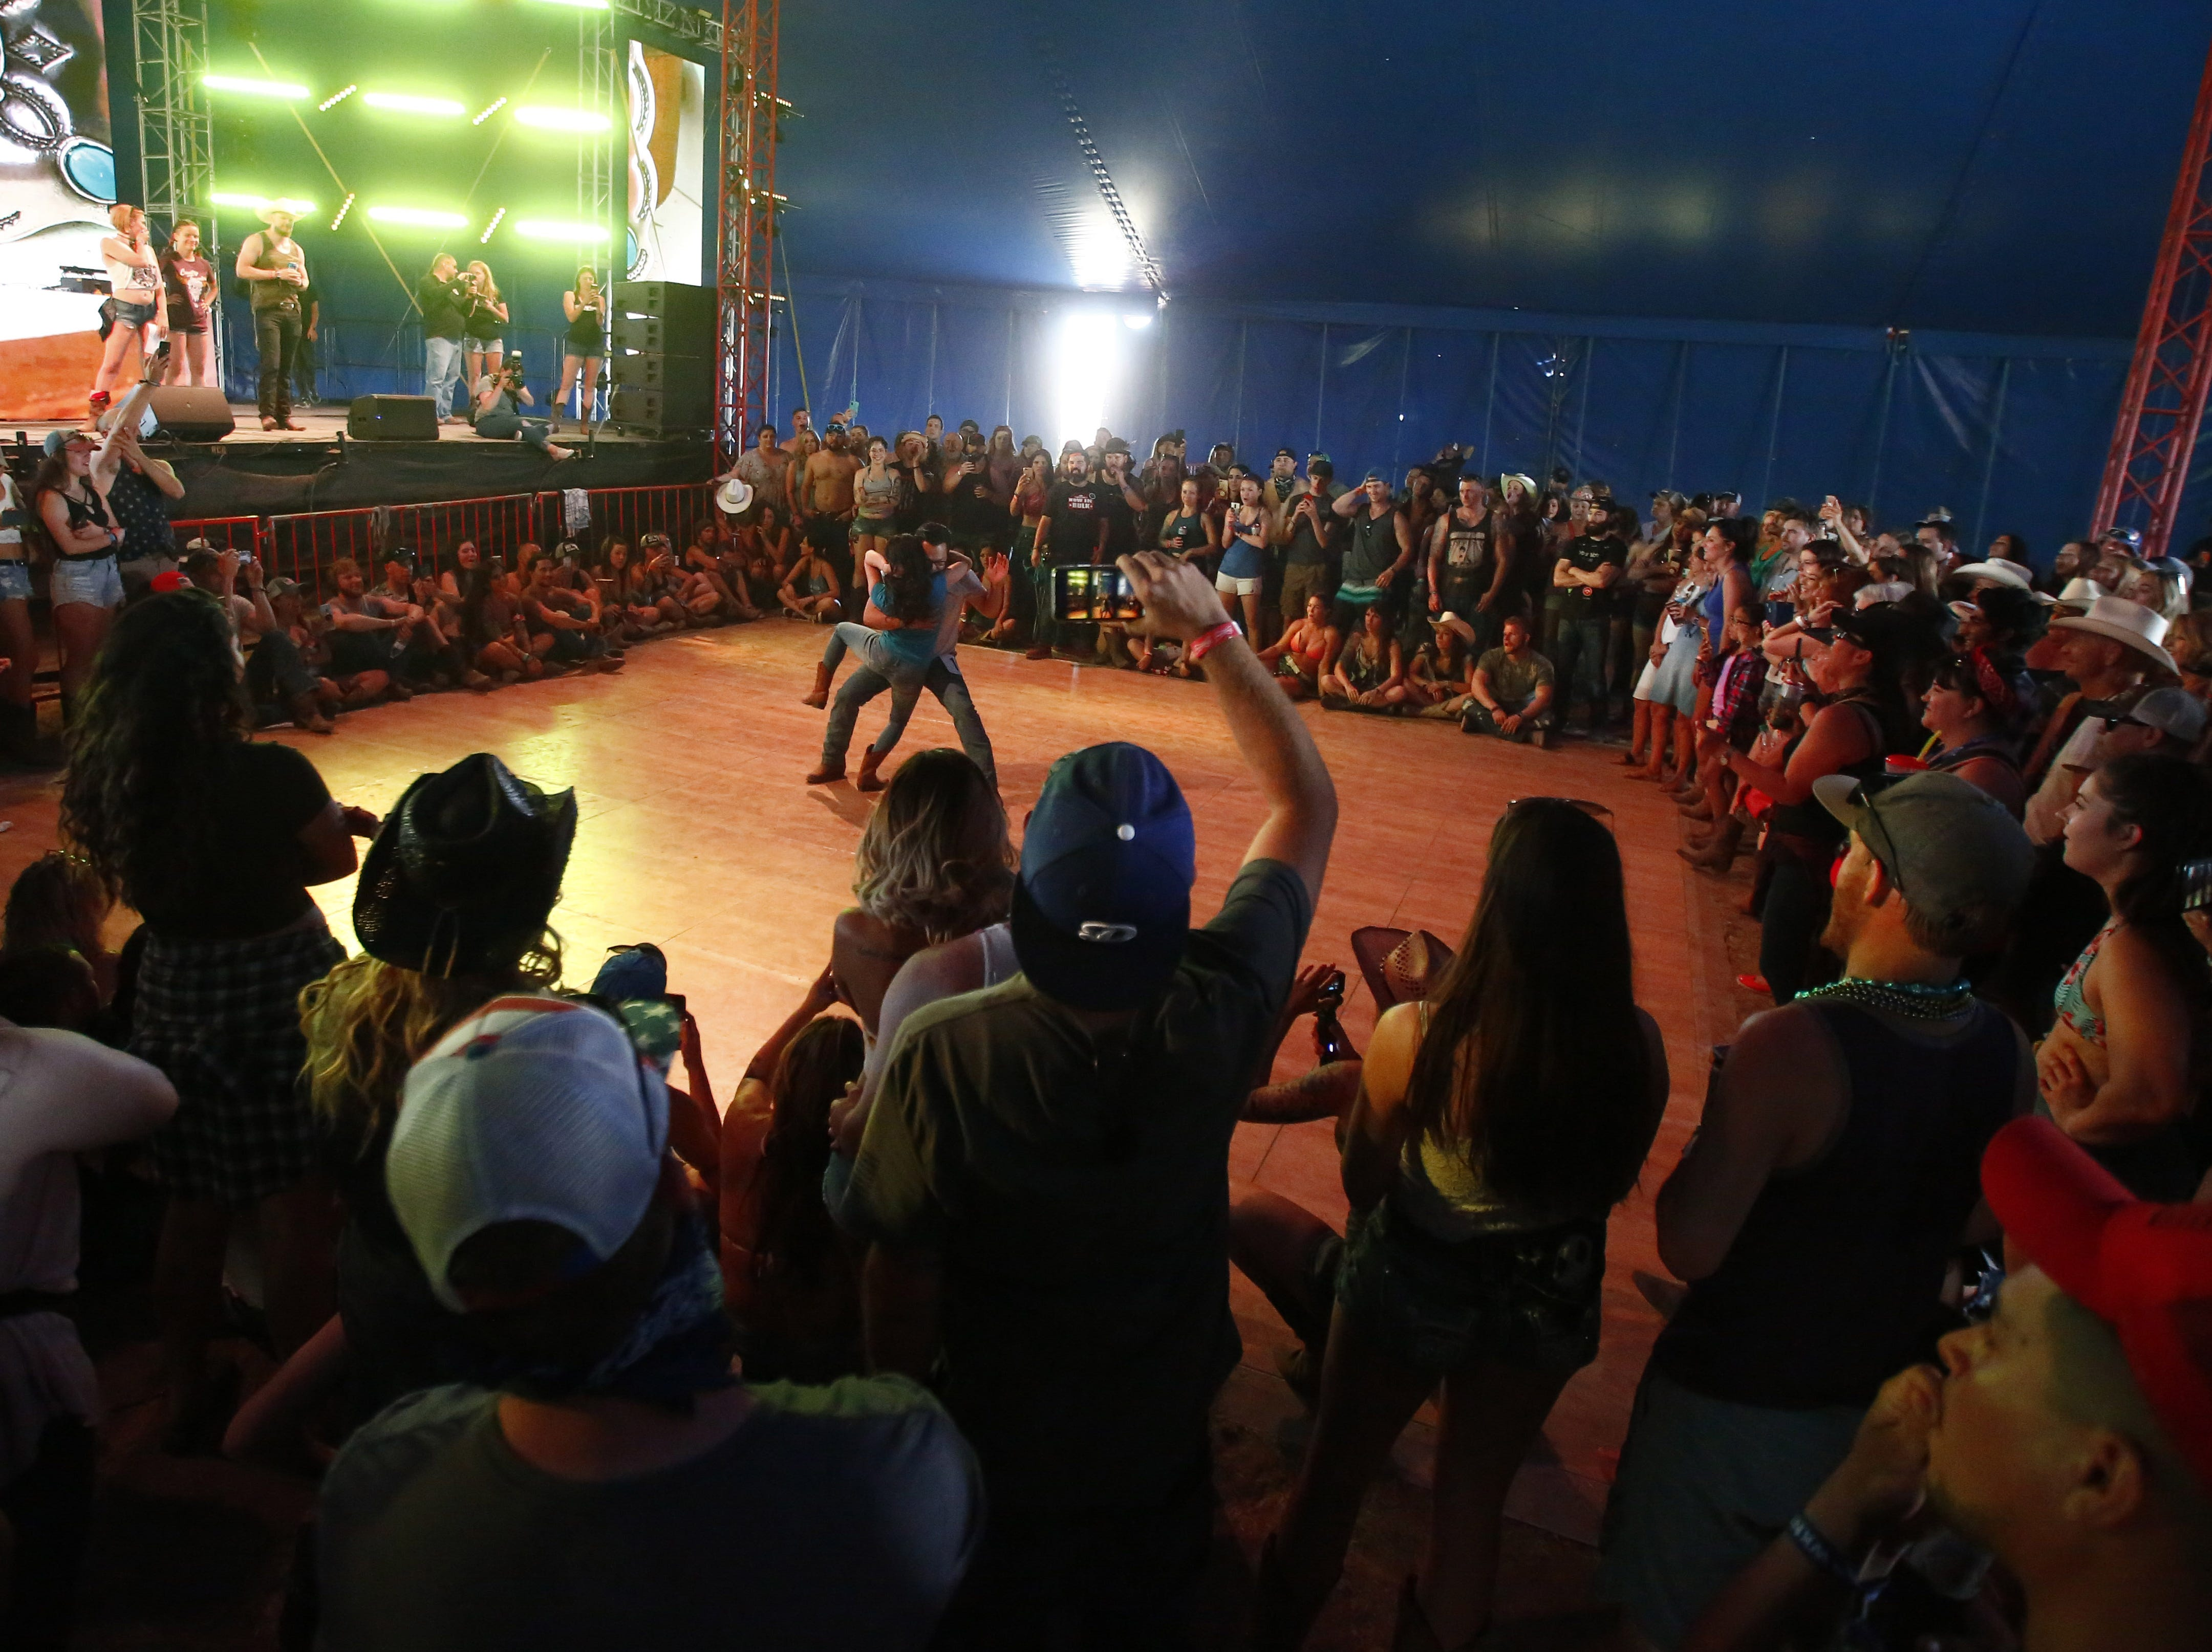 Christine Sanchez dances with Kennedy Wong during the finals of Dancing with the Thunder competition inside the Electric Thunder tent during Country Thunder in Florence, Ariz. on Saturday, April 13, 2019.